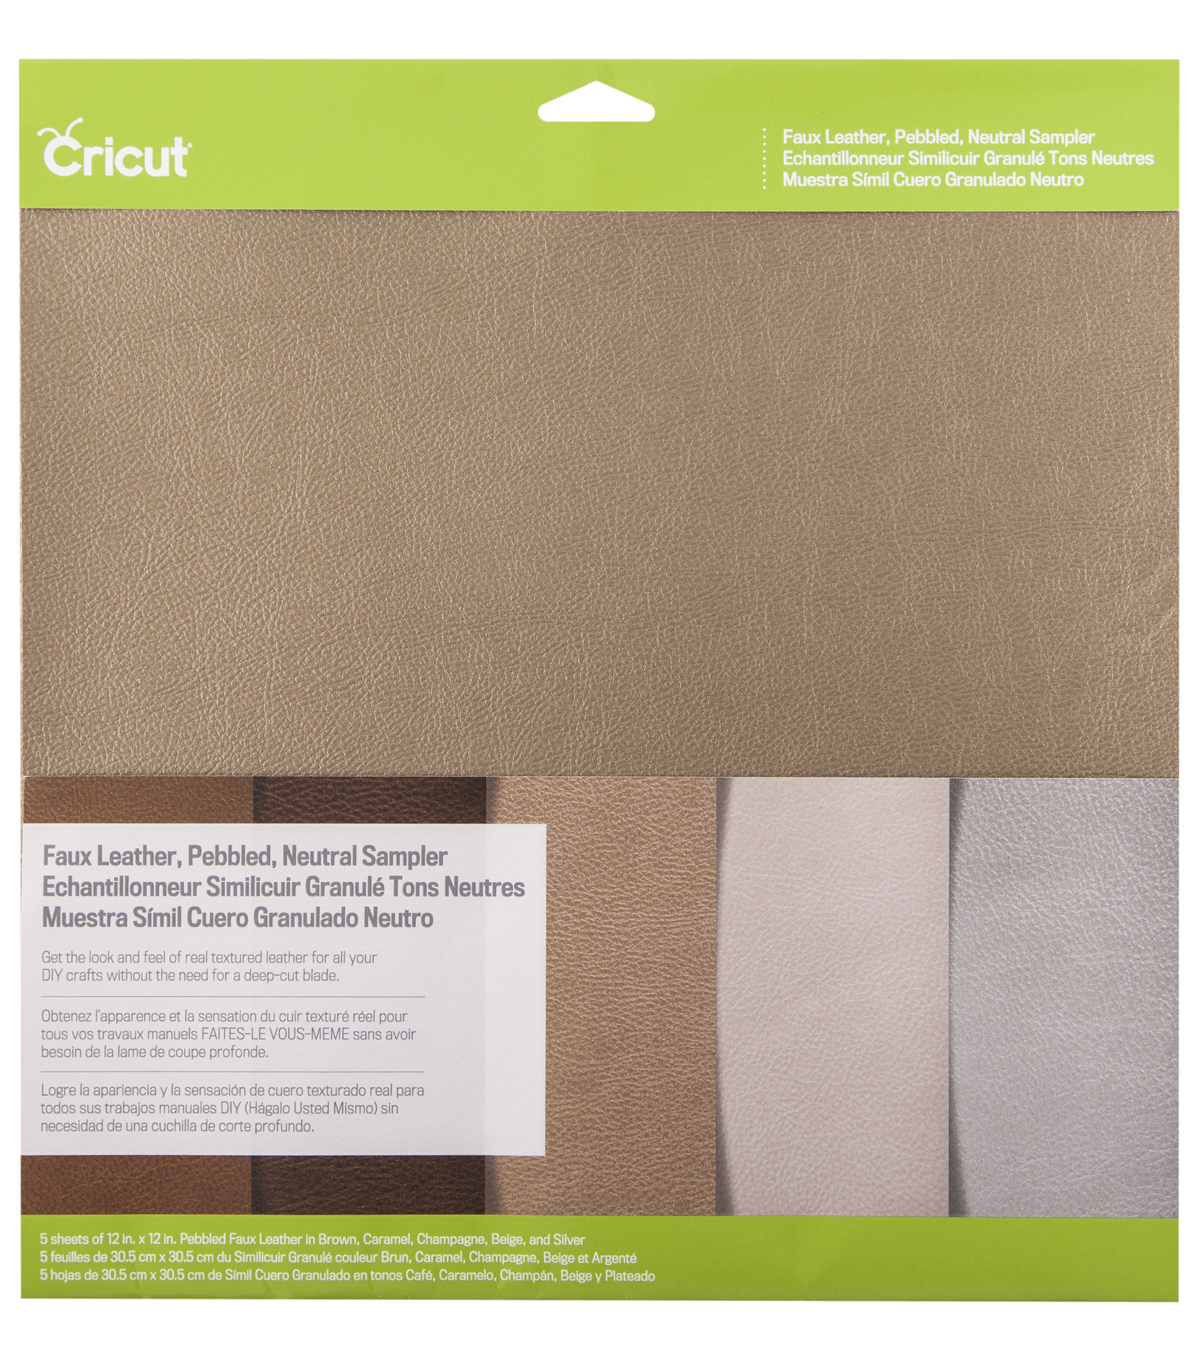 Cricut 12\u0027\u0027x12\u0027\u0027 Faux Leather Pebbled Sampler-Neutral